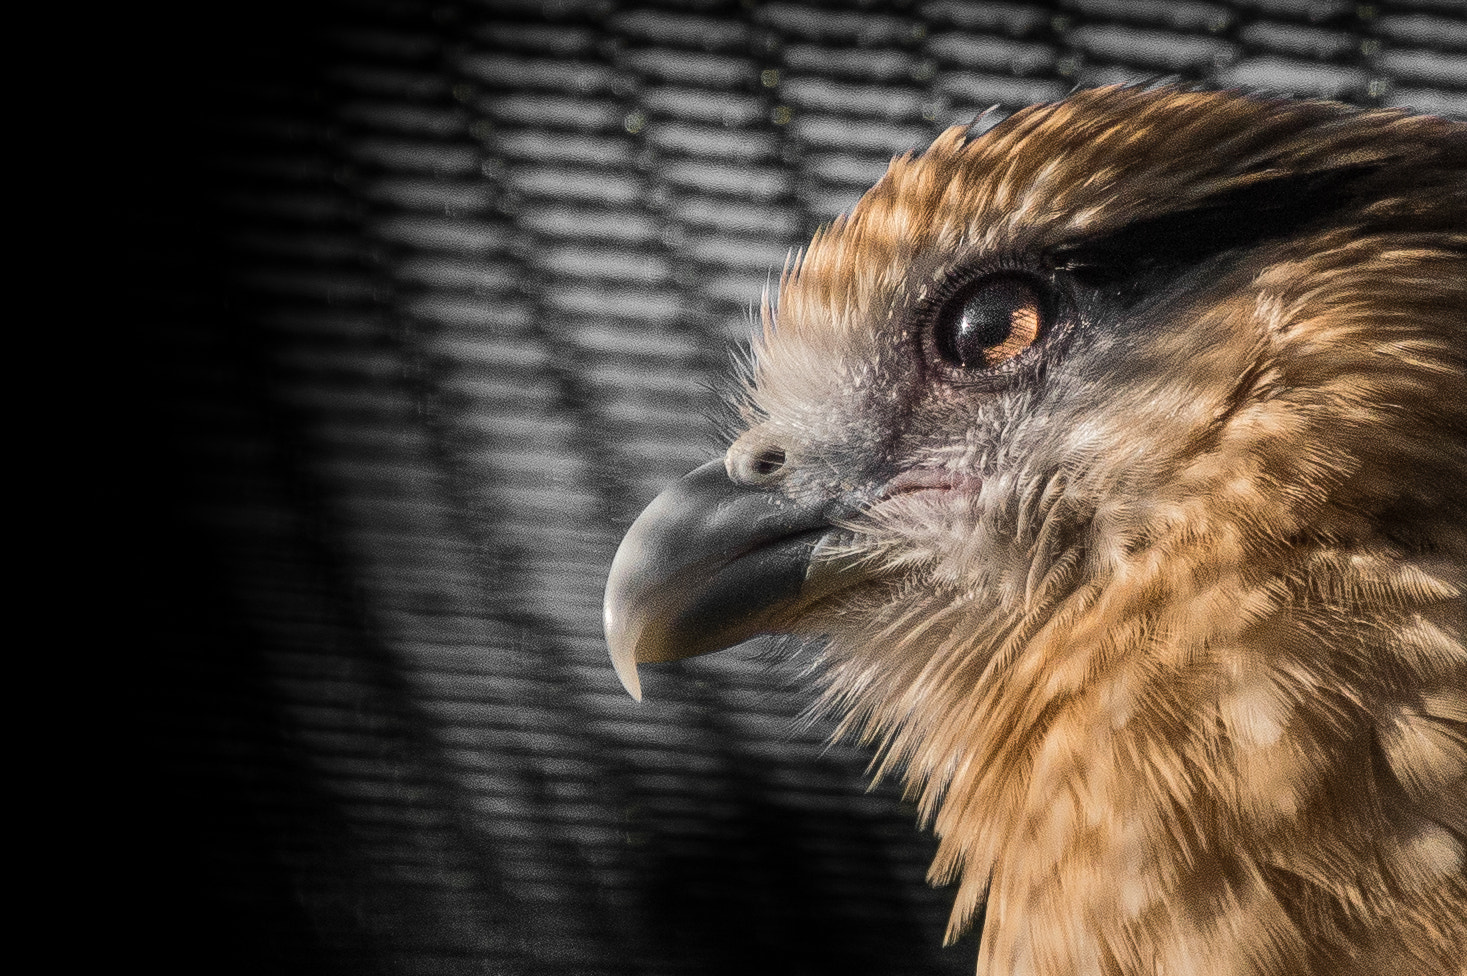 Photograph I Want to be FREE by Tony Haddow on 500px